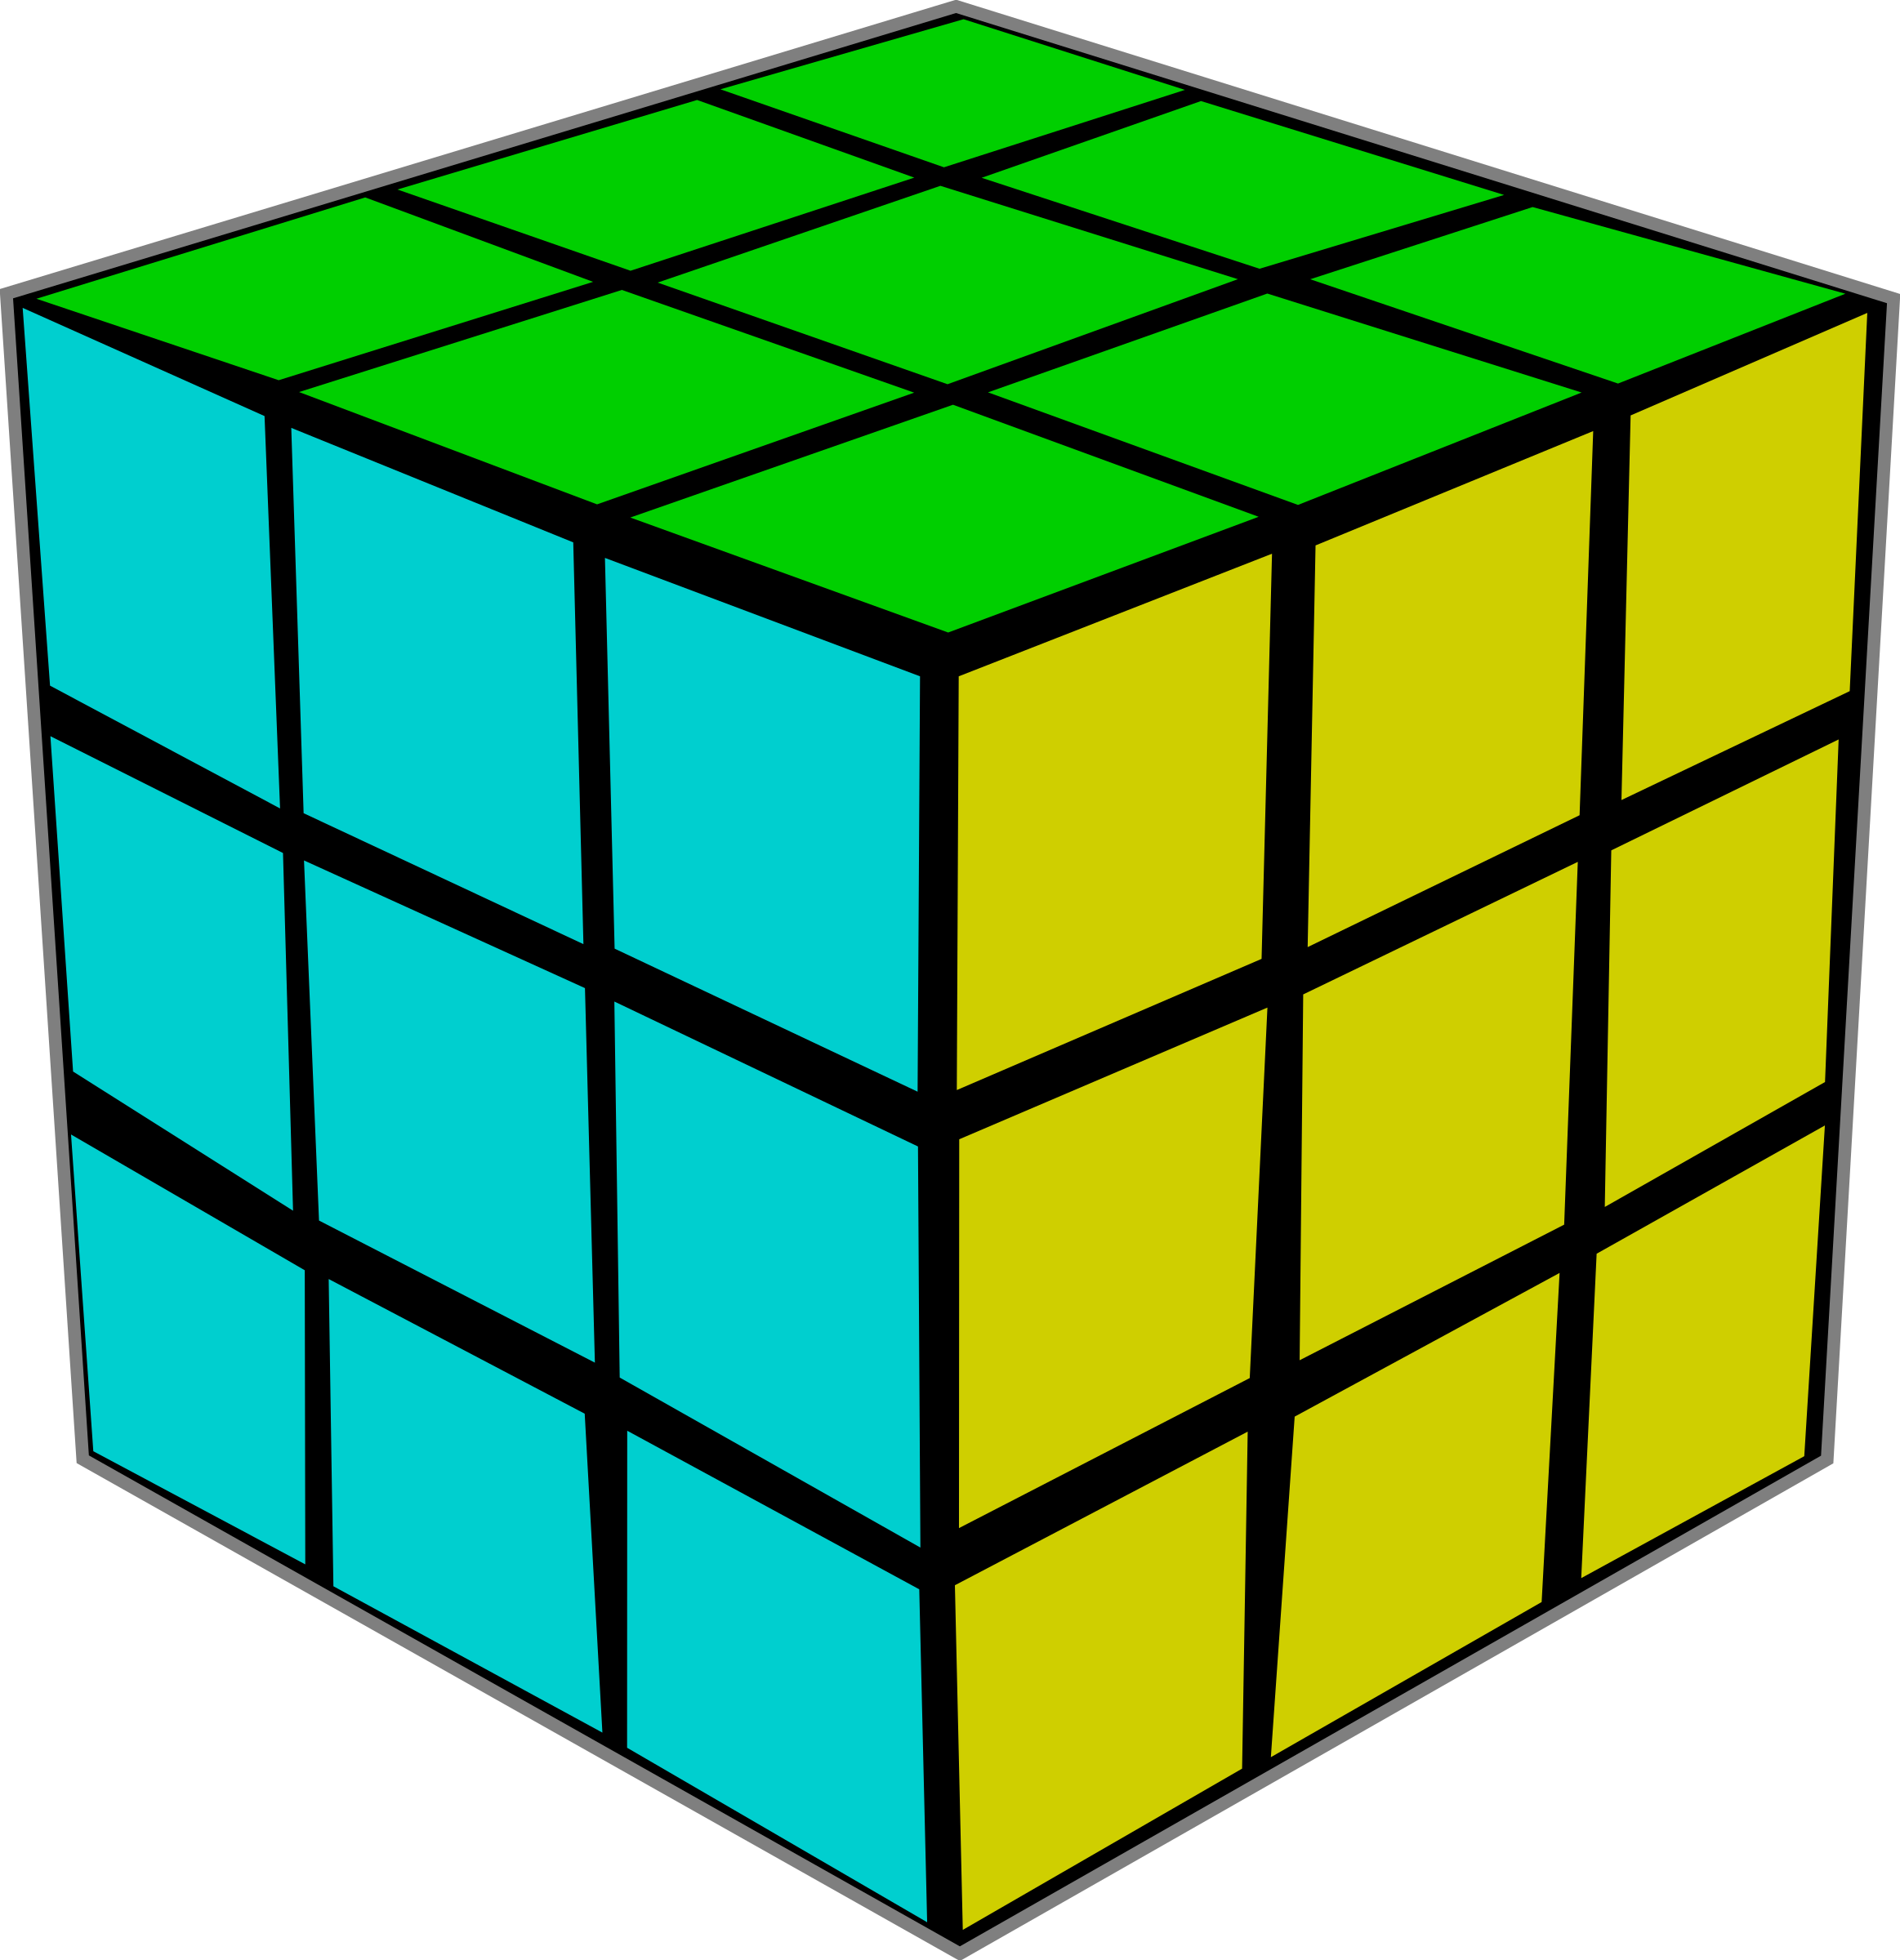 Rubik's Cube by Rfc1394